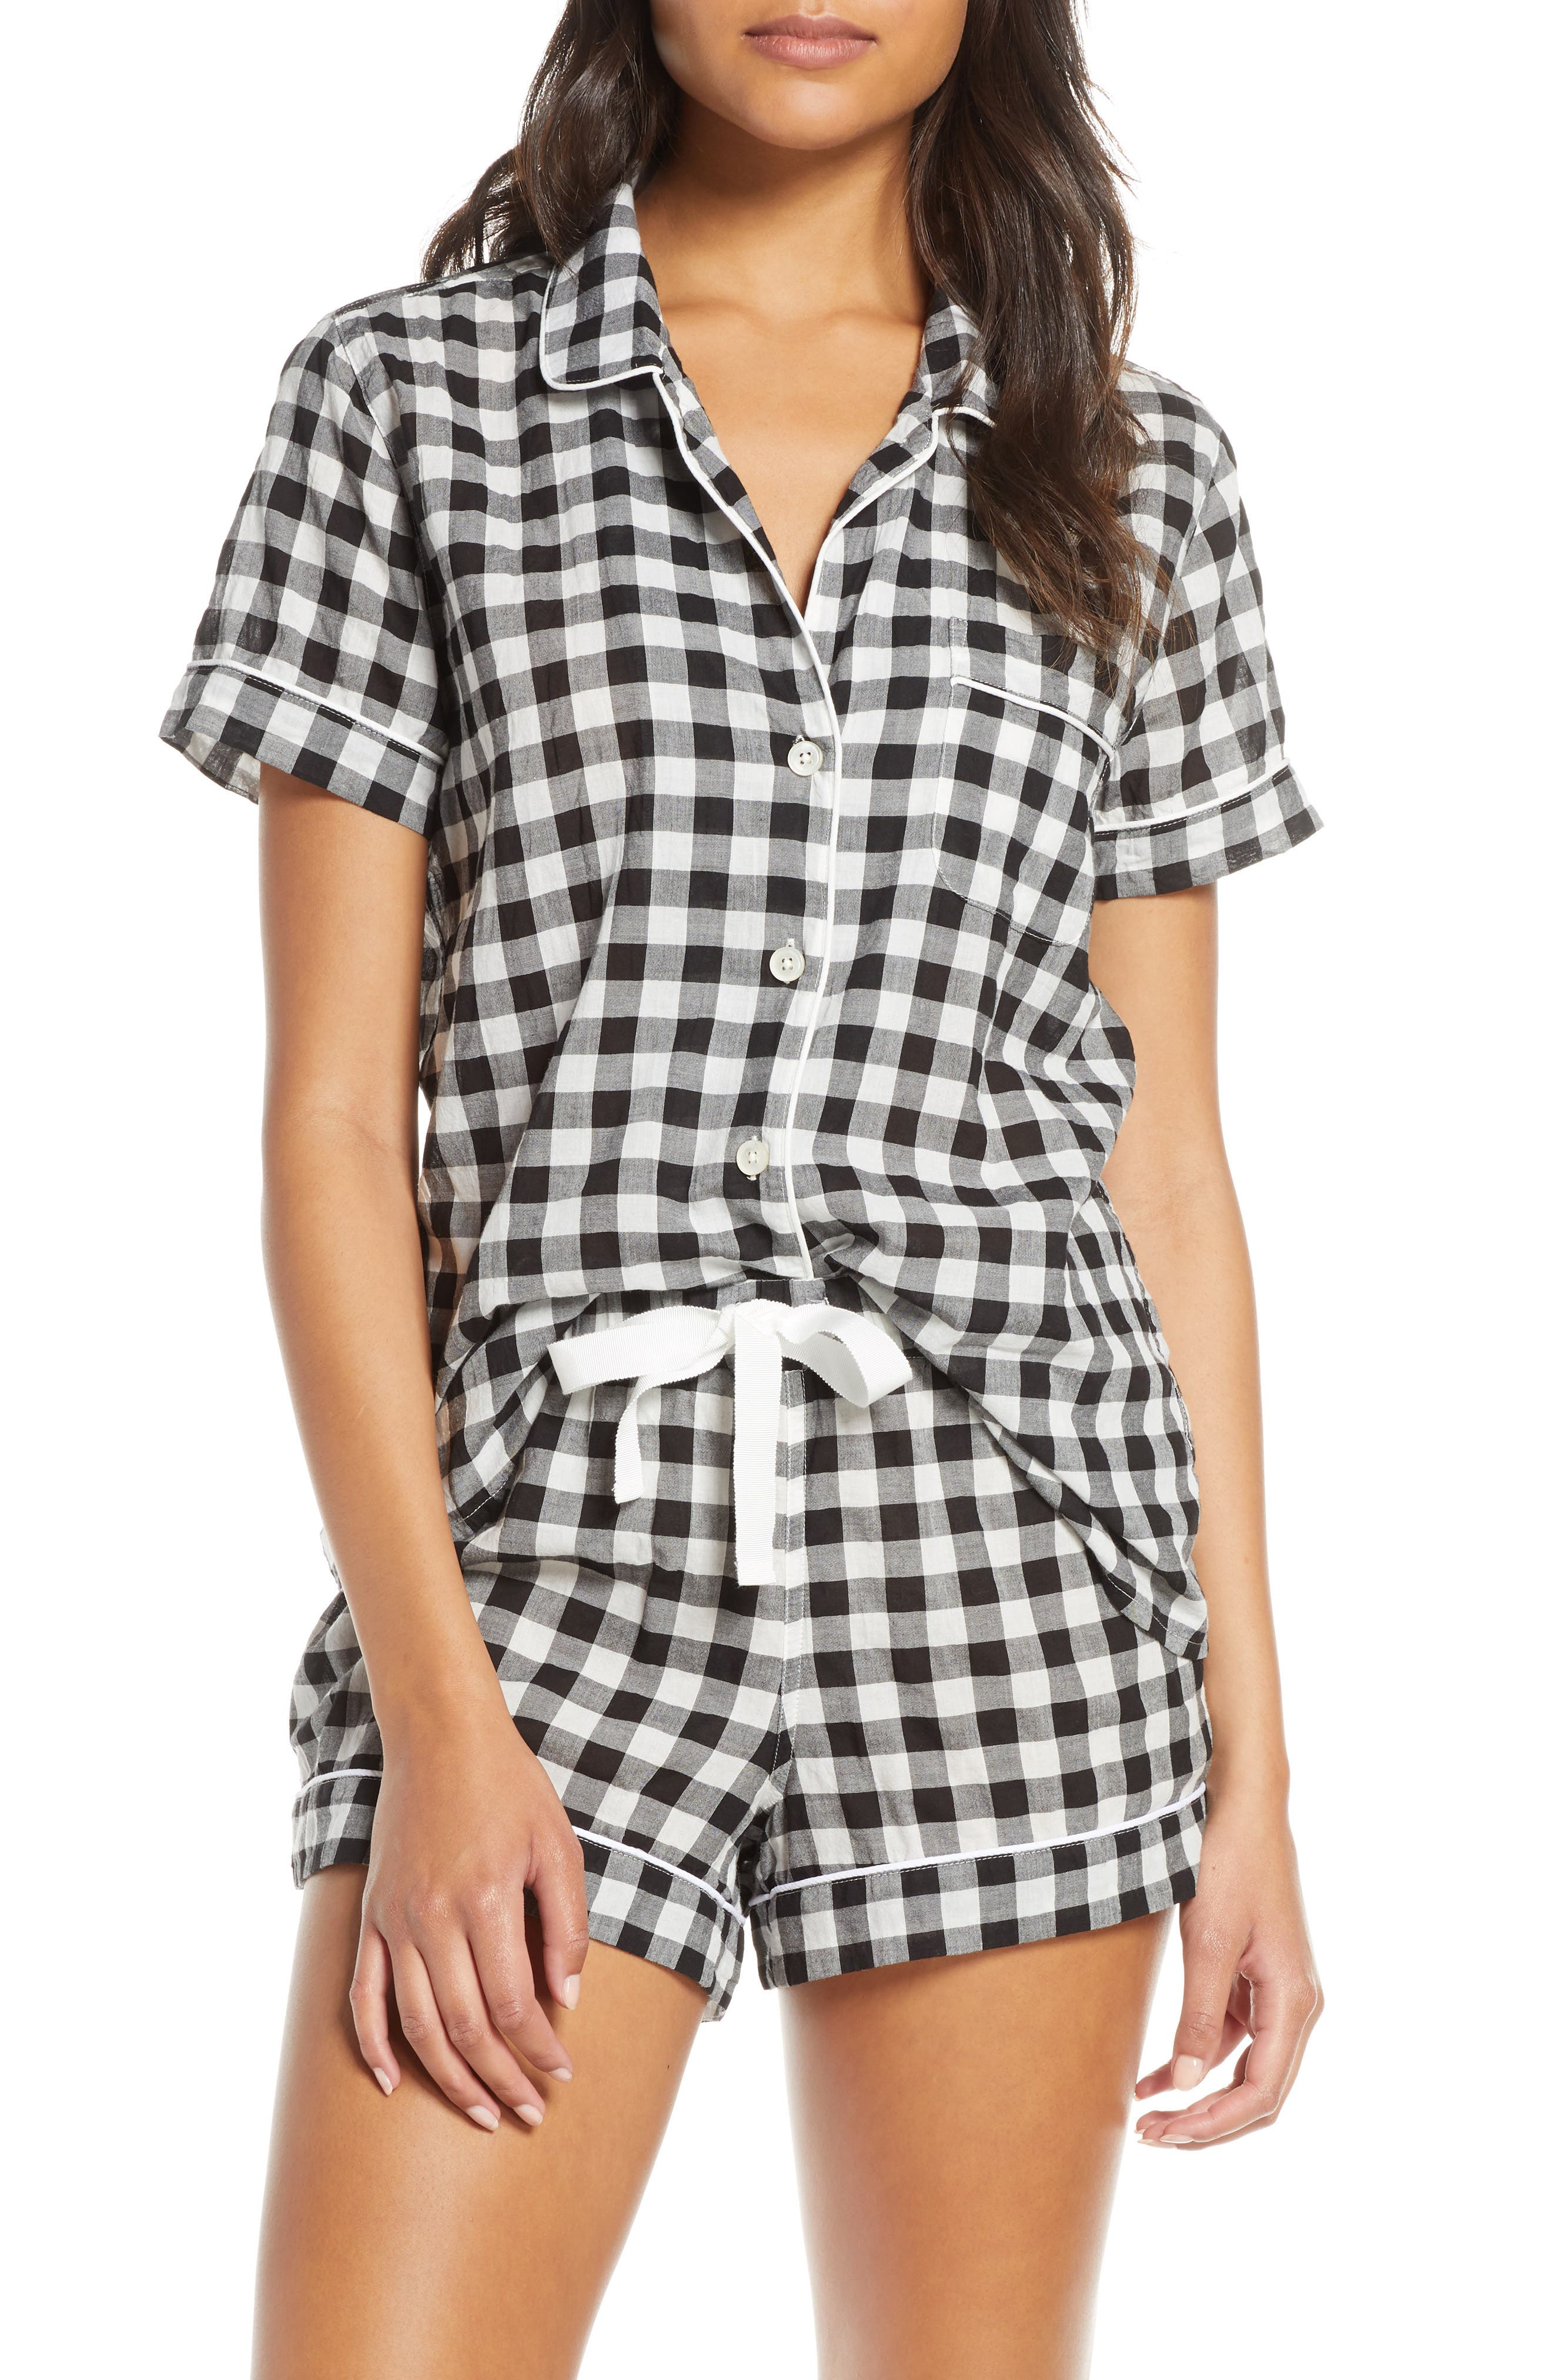 J.crew Gingham Short Sleeve Pajama Top